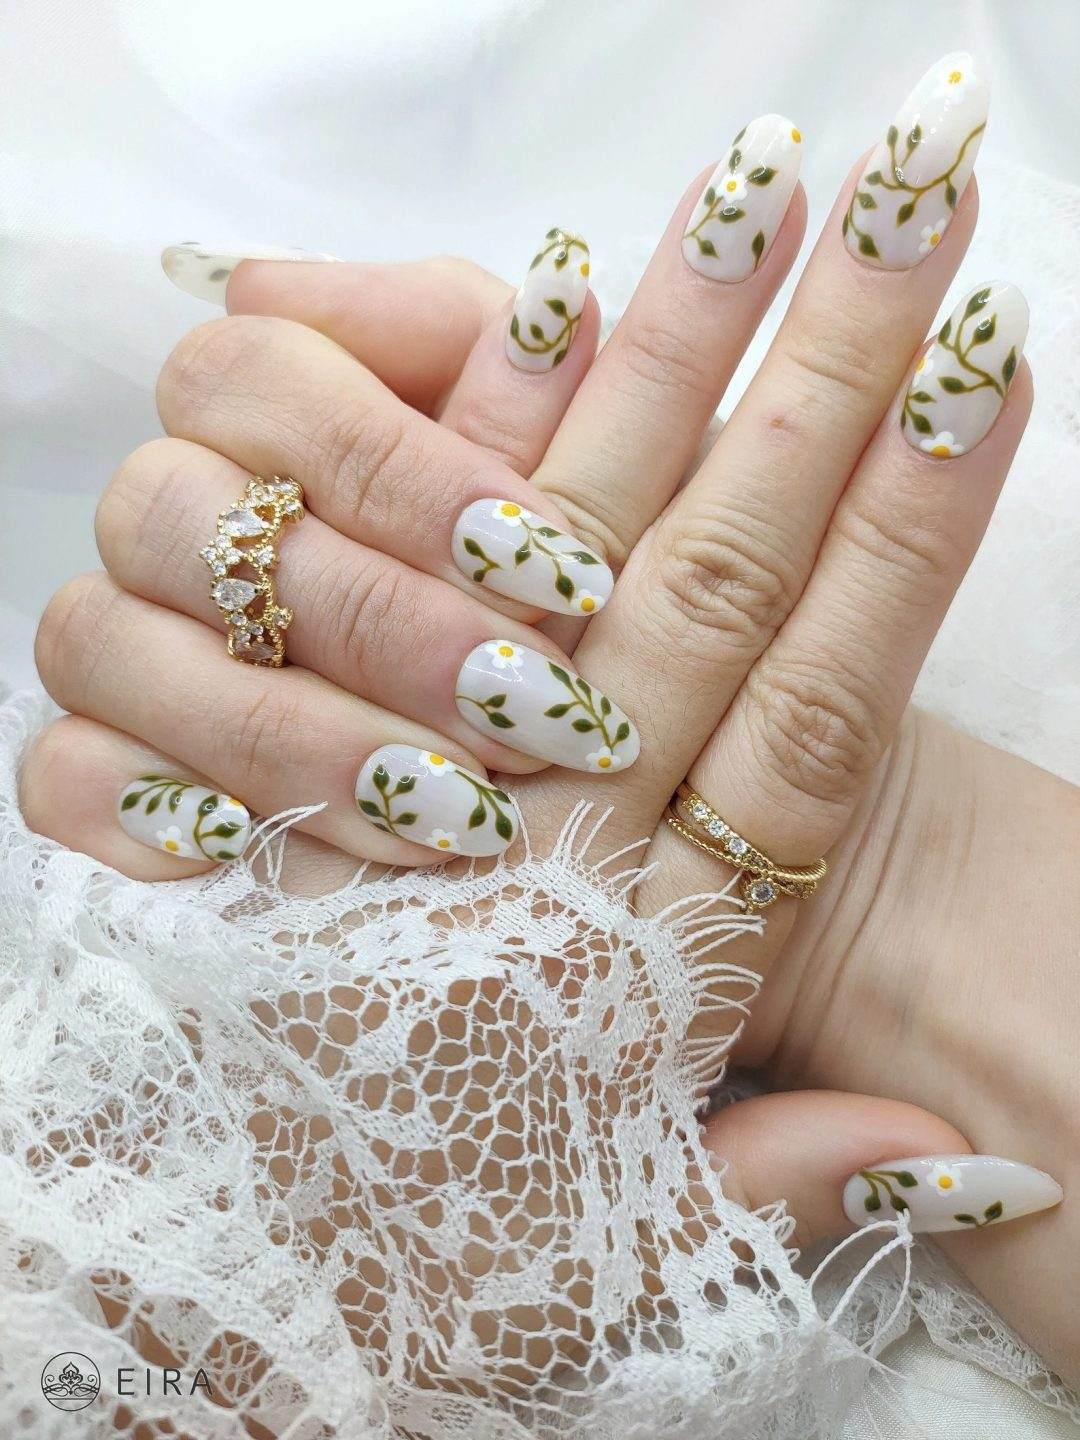 Daisy nails with leaves